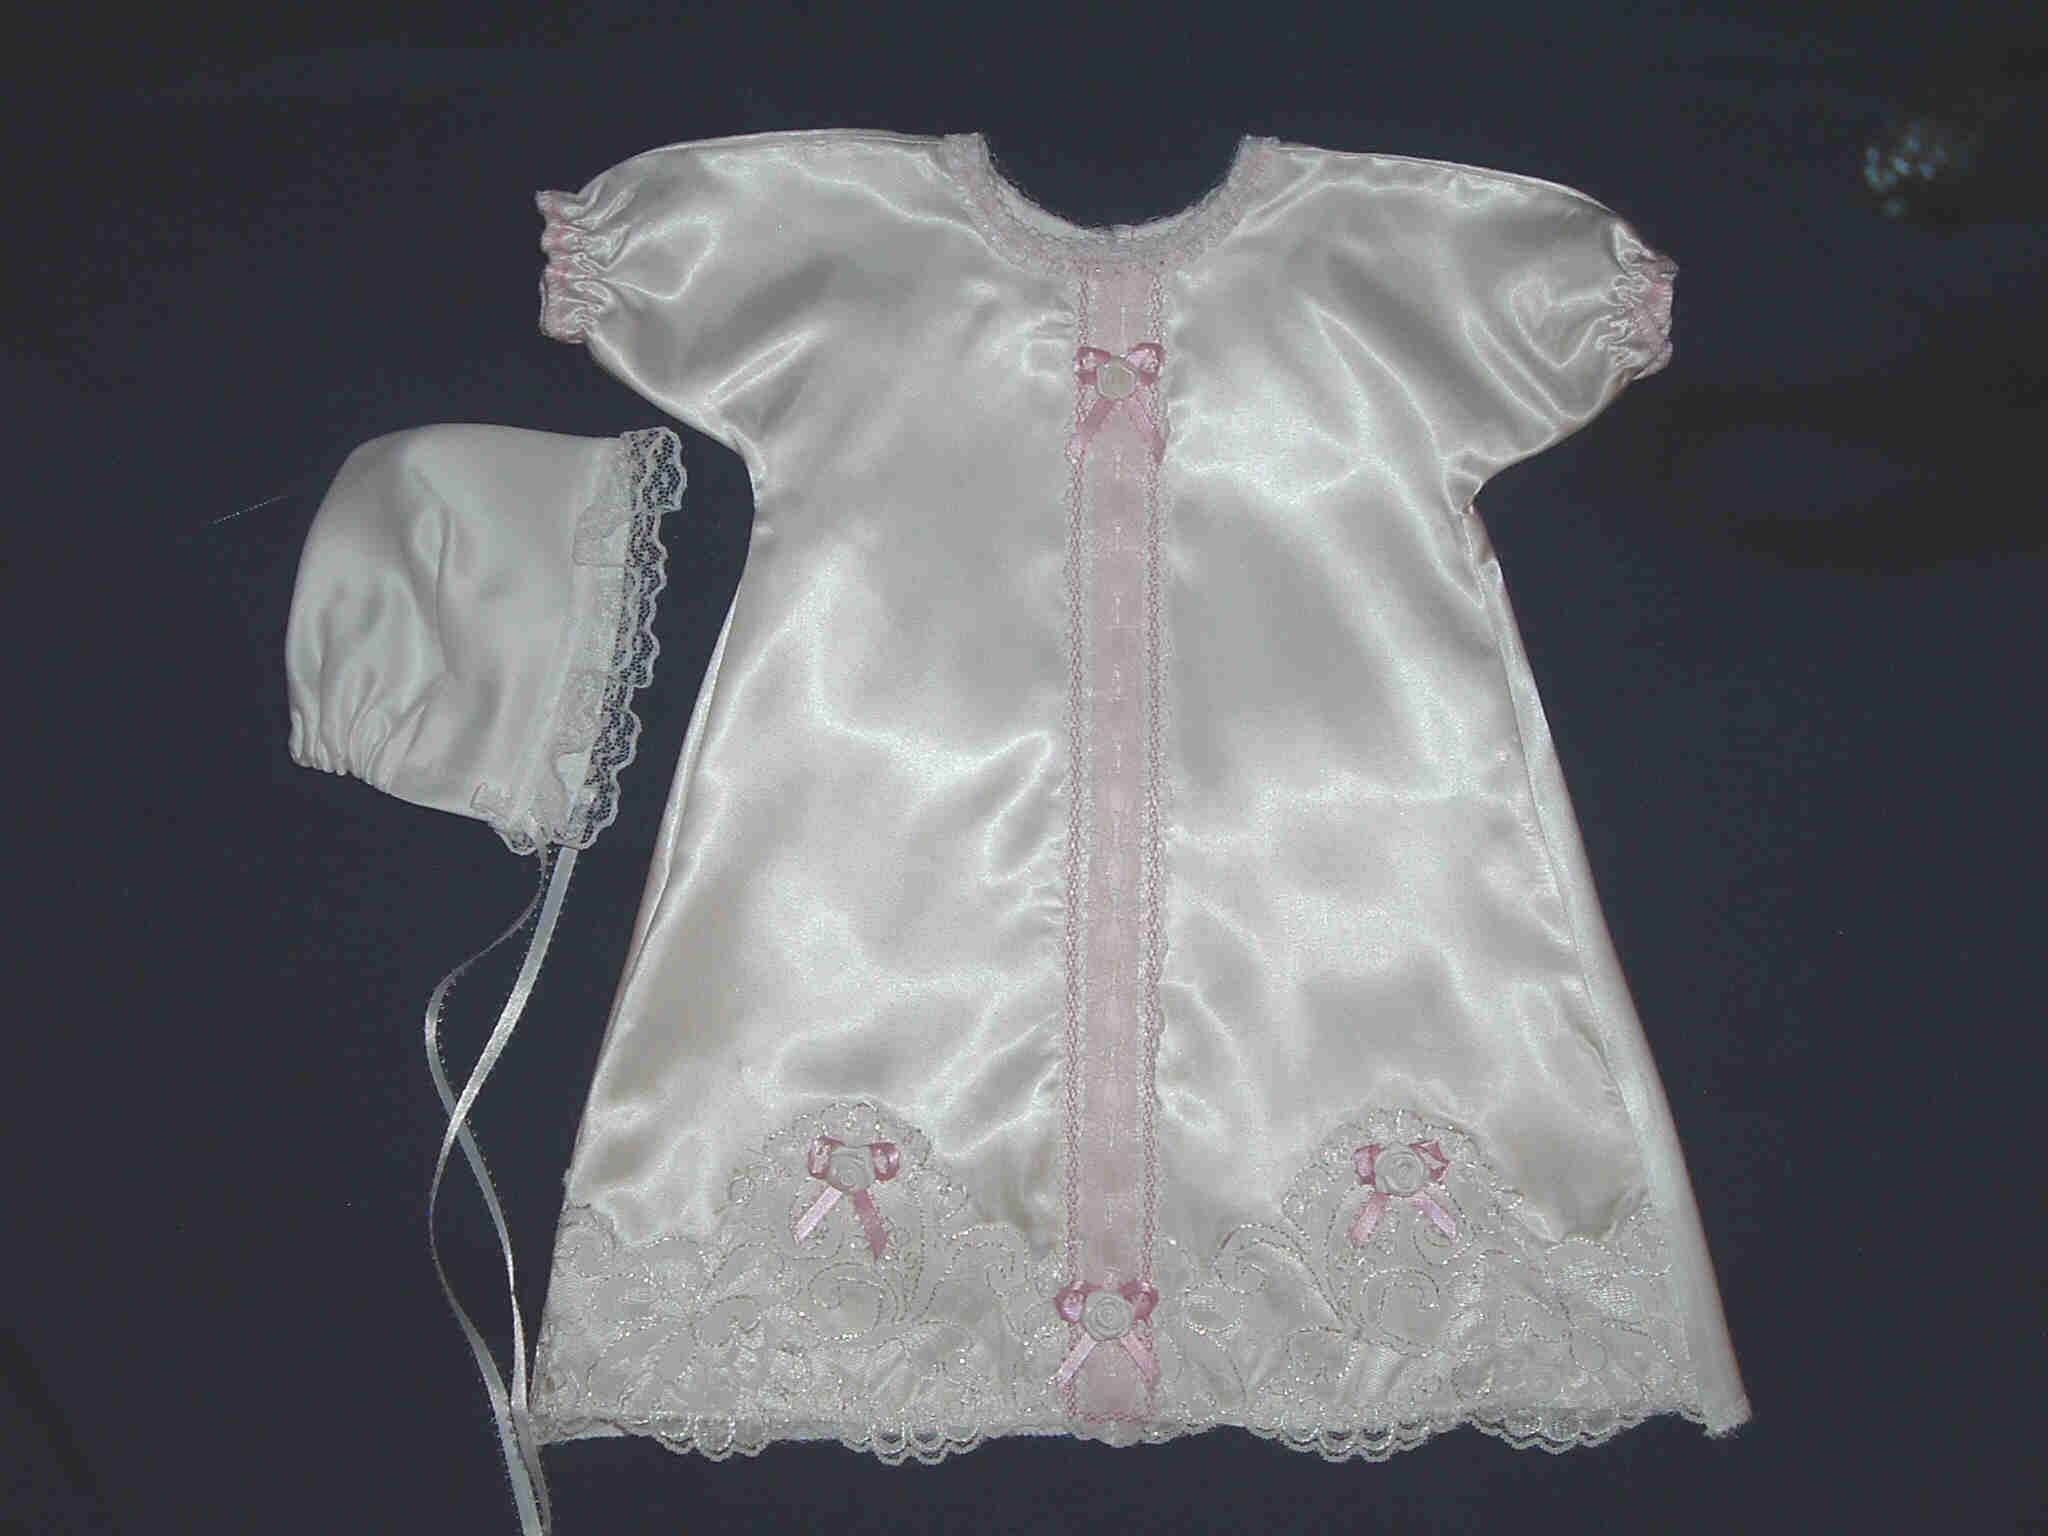 Funeral or Memorial Service for a Baby   Angel Gowns   Pinterest ...